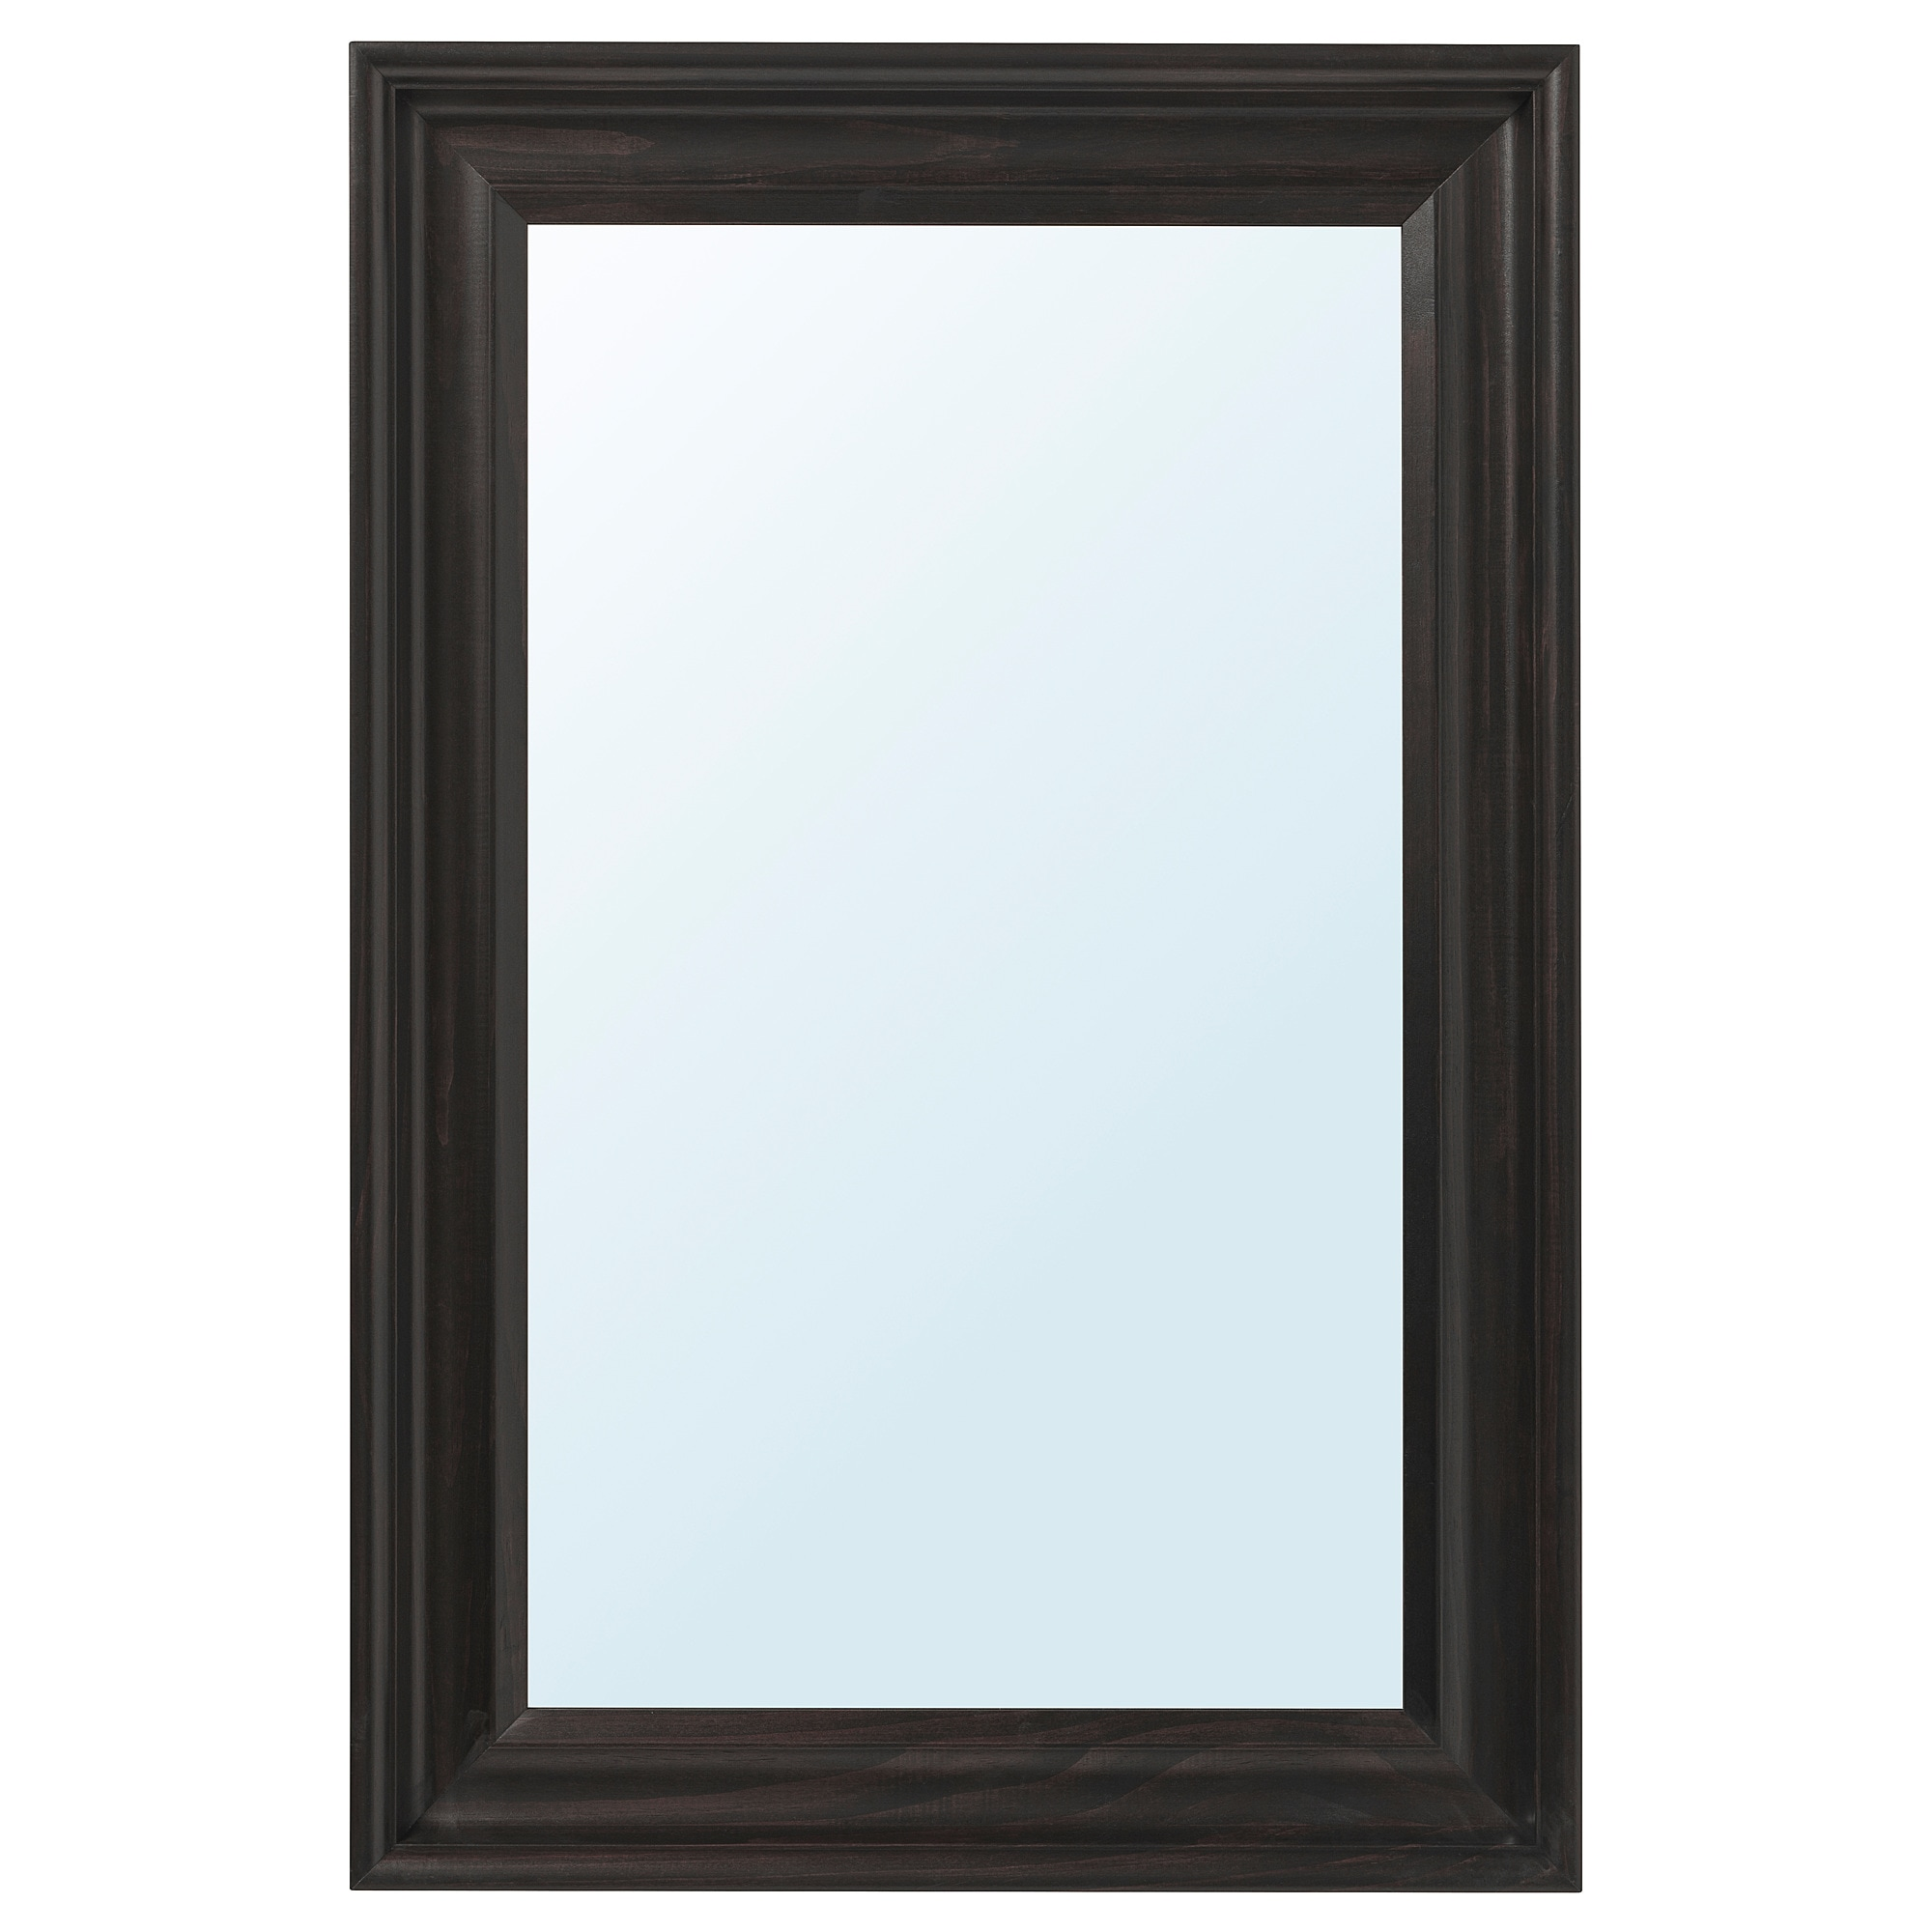 Beau HEMNES Mirror, Black Brown